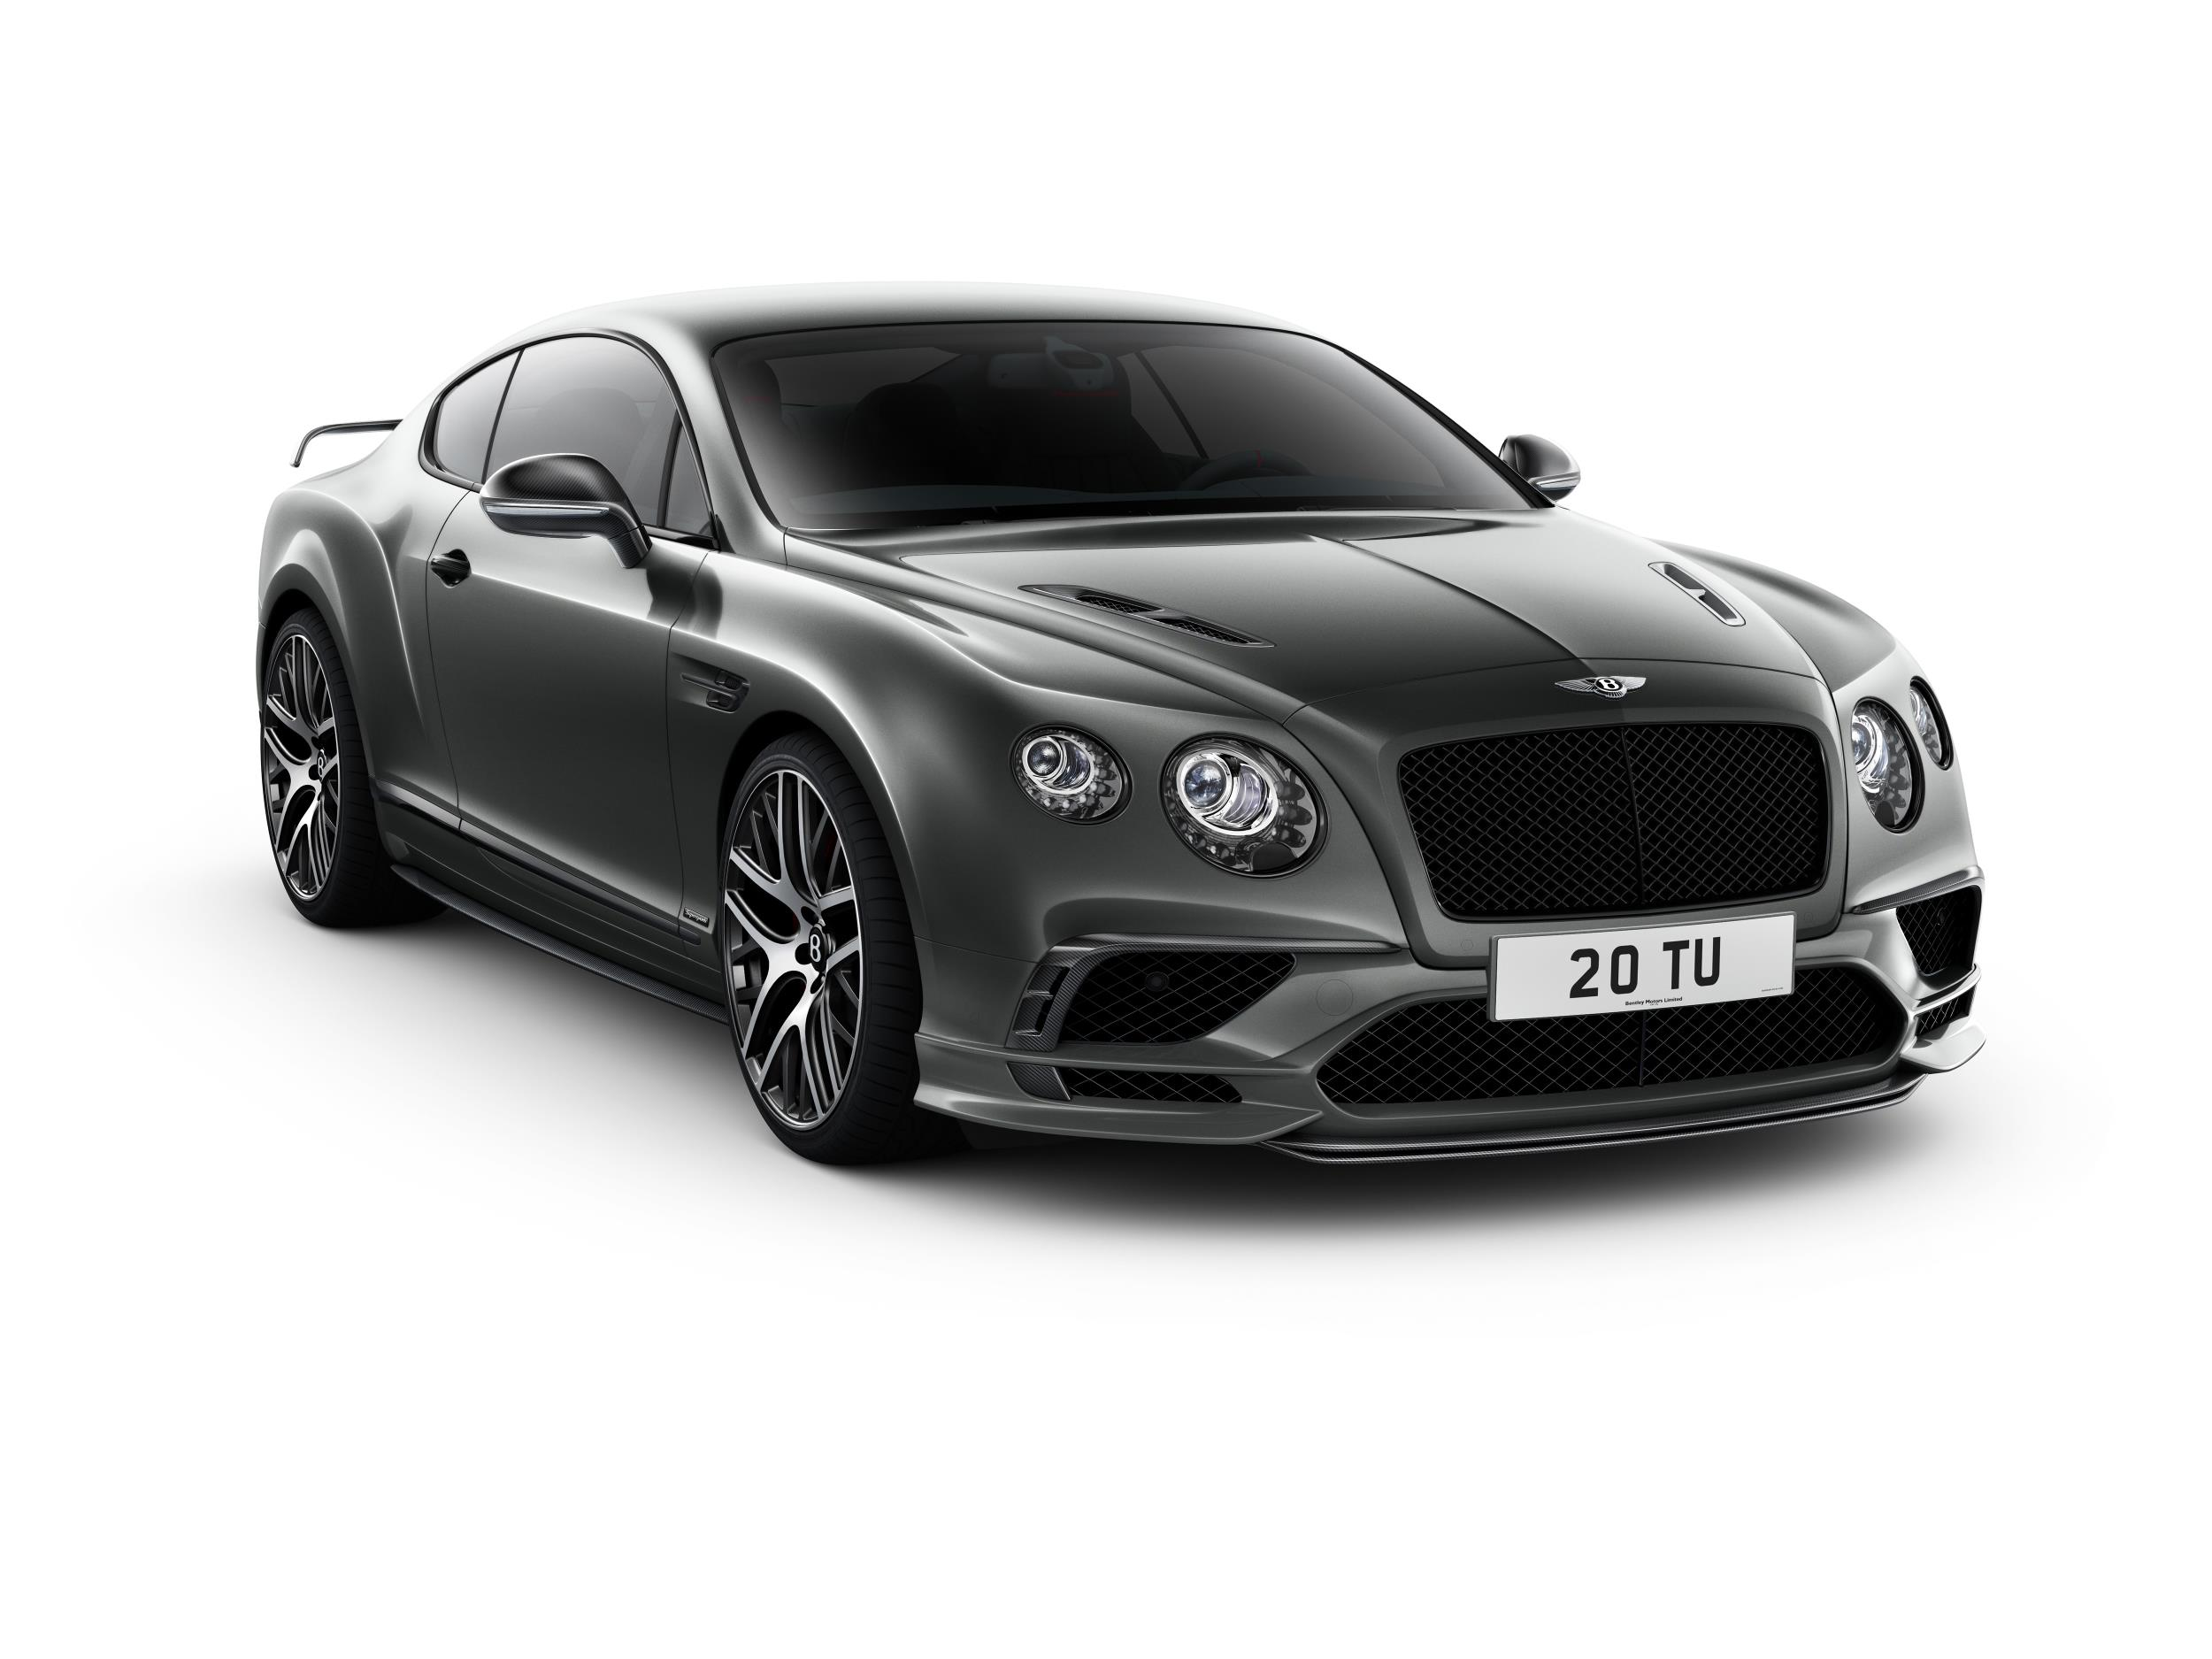 continental on seater four be seconds supersports fastest ever in at powerful and will convertible to s dynamic a maximum most bentley the mph of upcoming